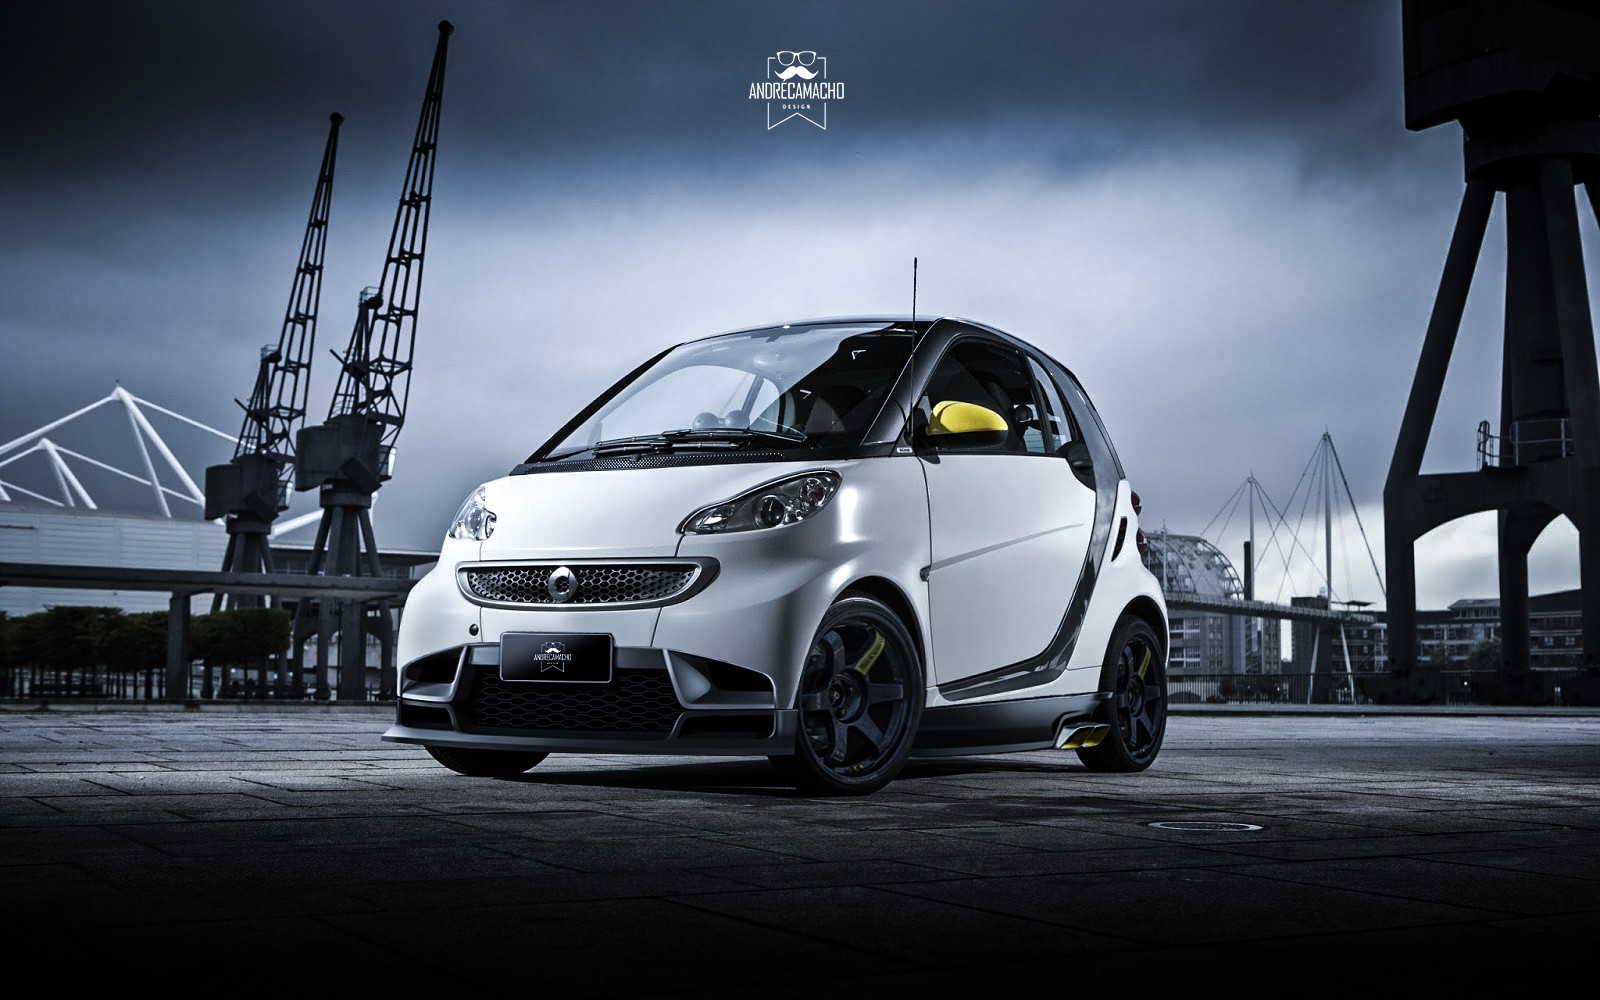 Andre camacho design smart car wallpaper2